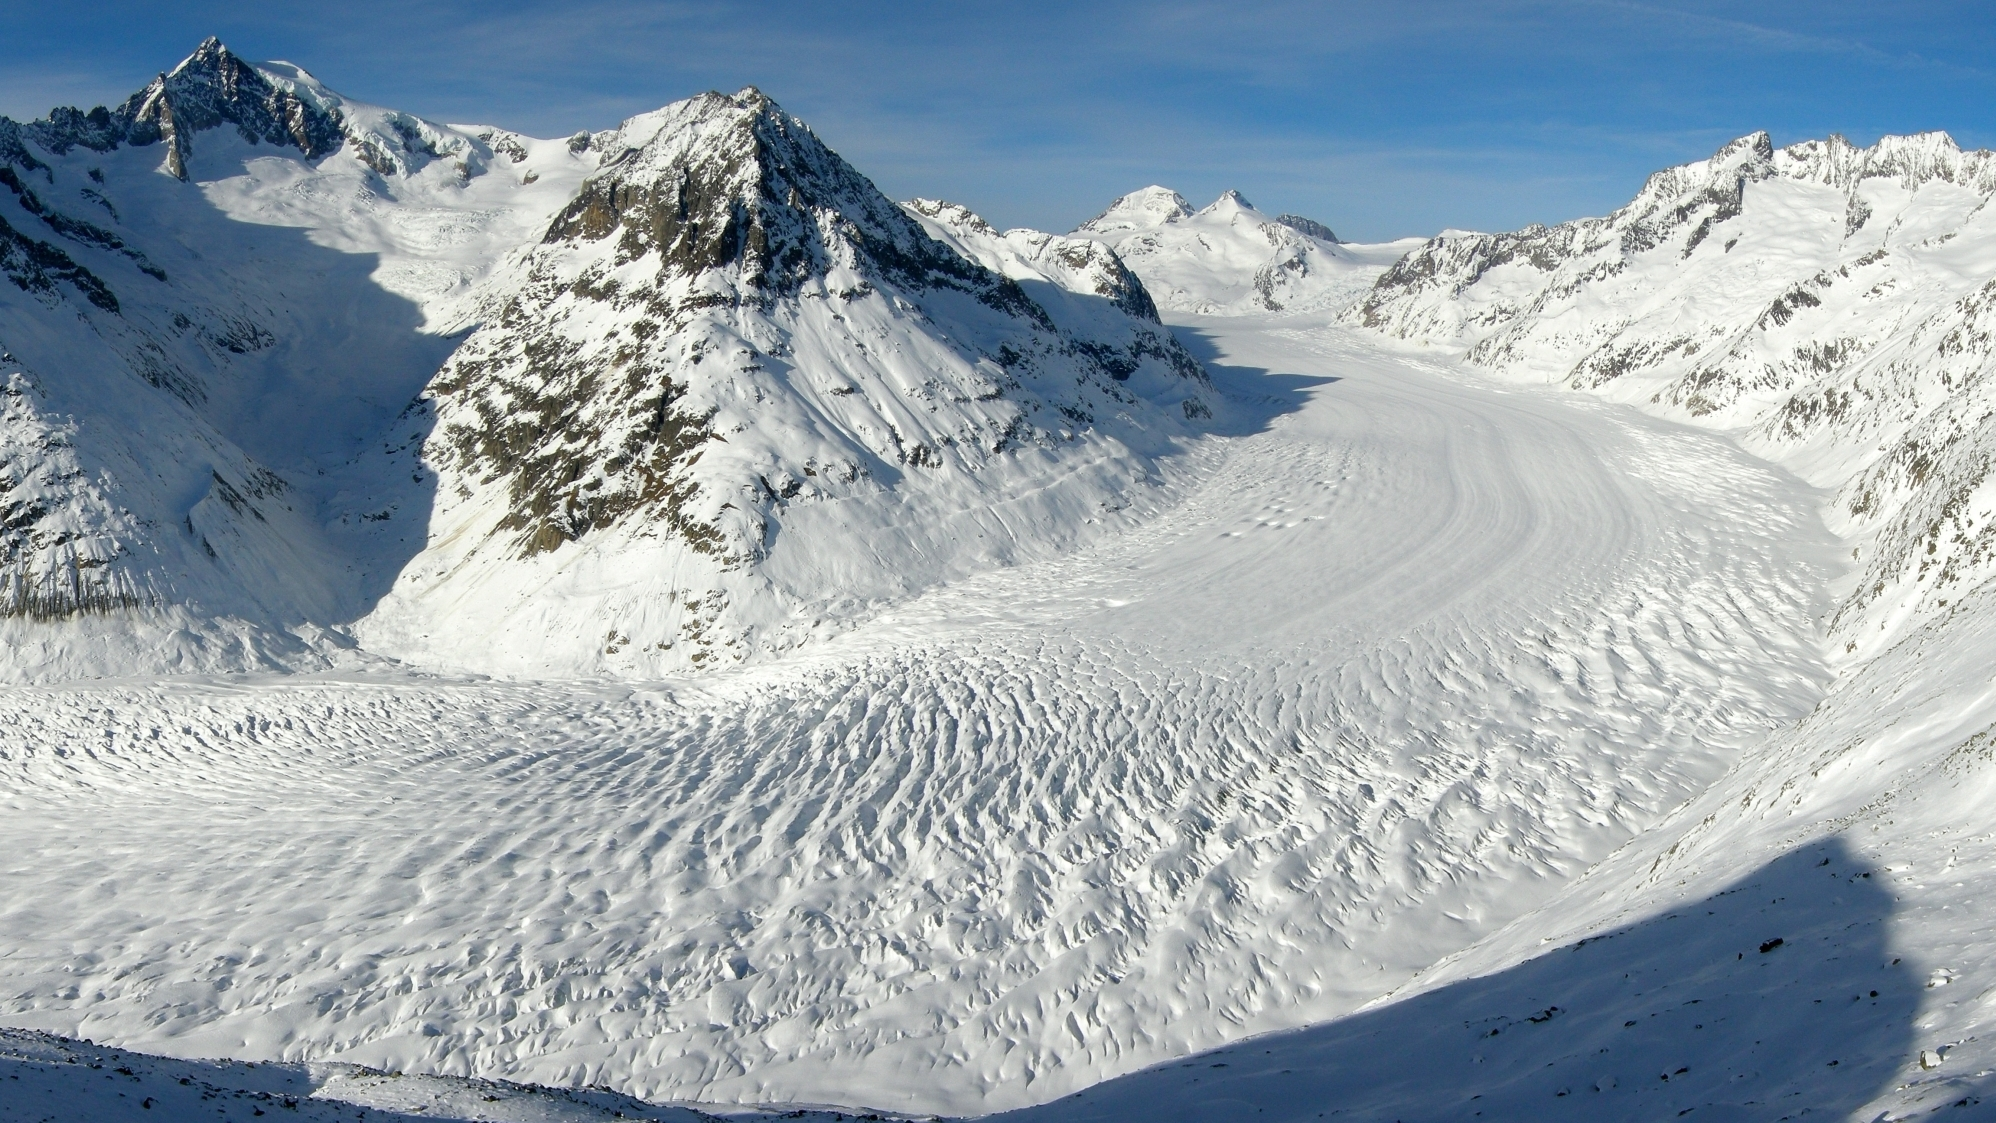 Pollution, Not Rising Temperatures, May Have Melted Alpine Glaciers